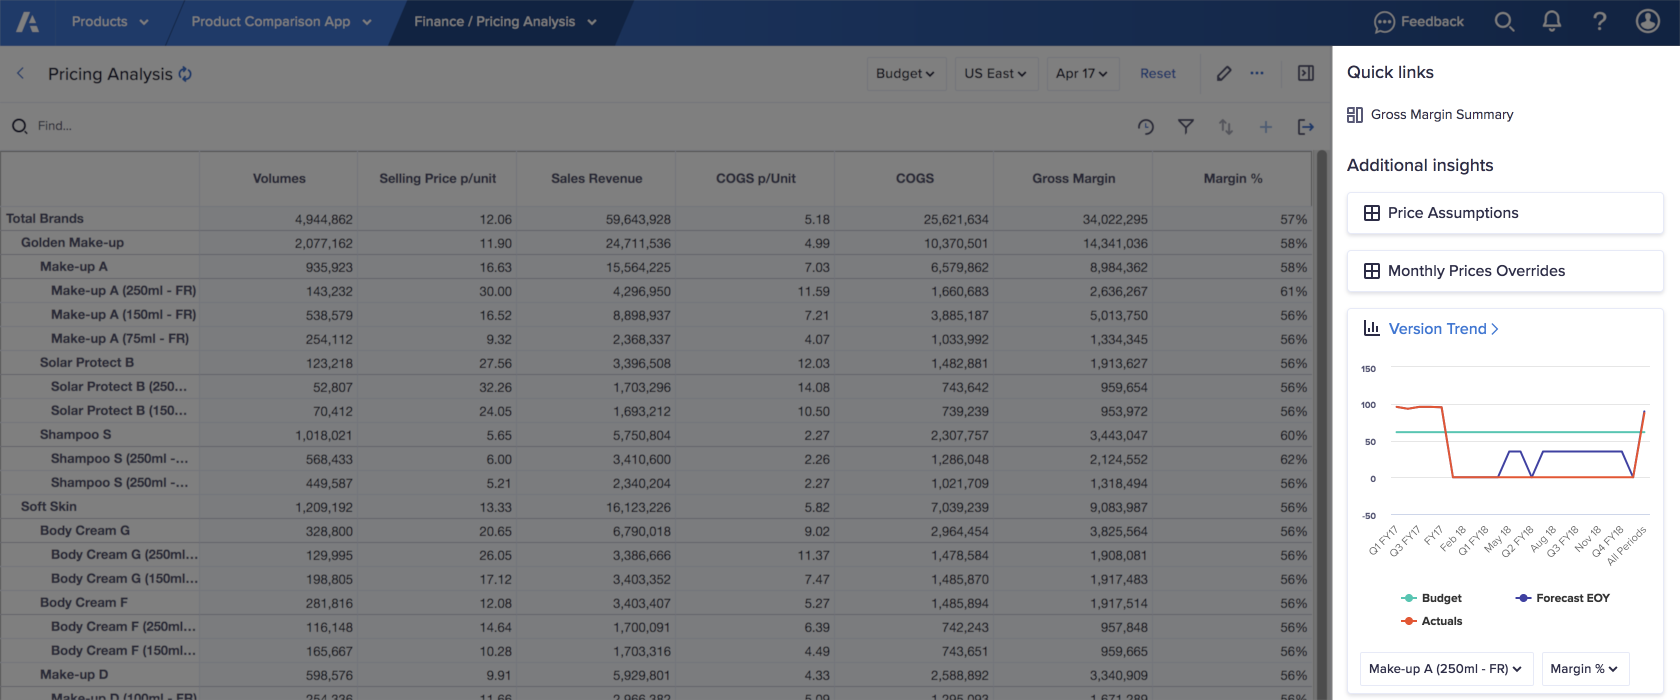 Pricing Analysis worksheet, with Quick links and Additional insights in the Insights panel highlighted on the right.